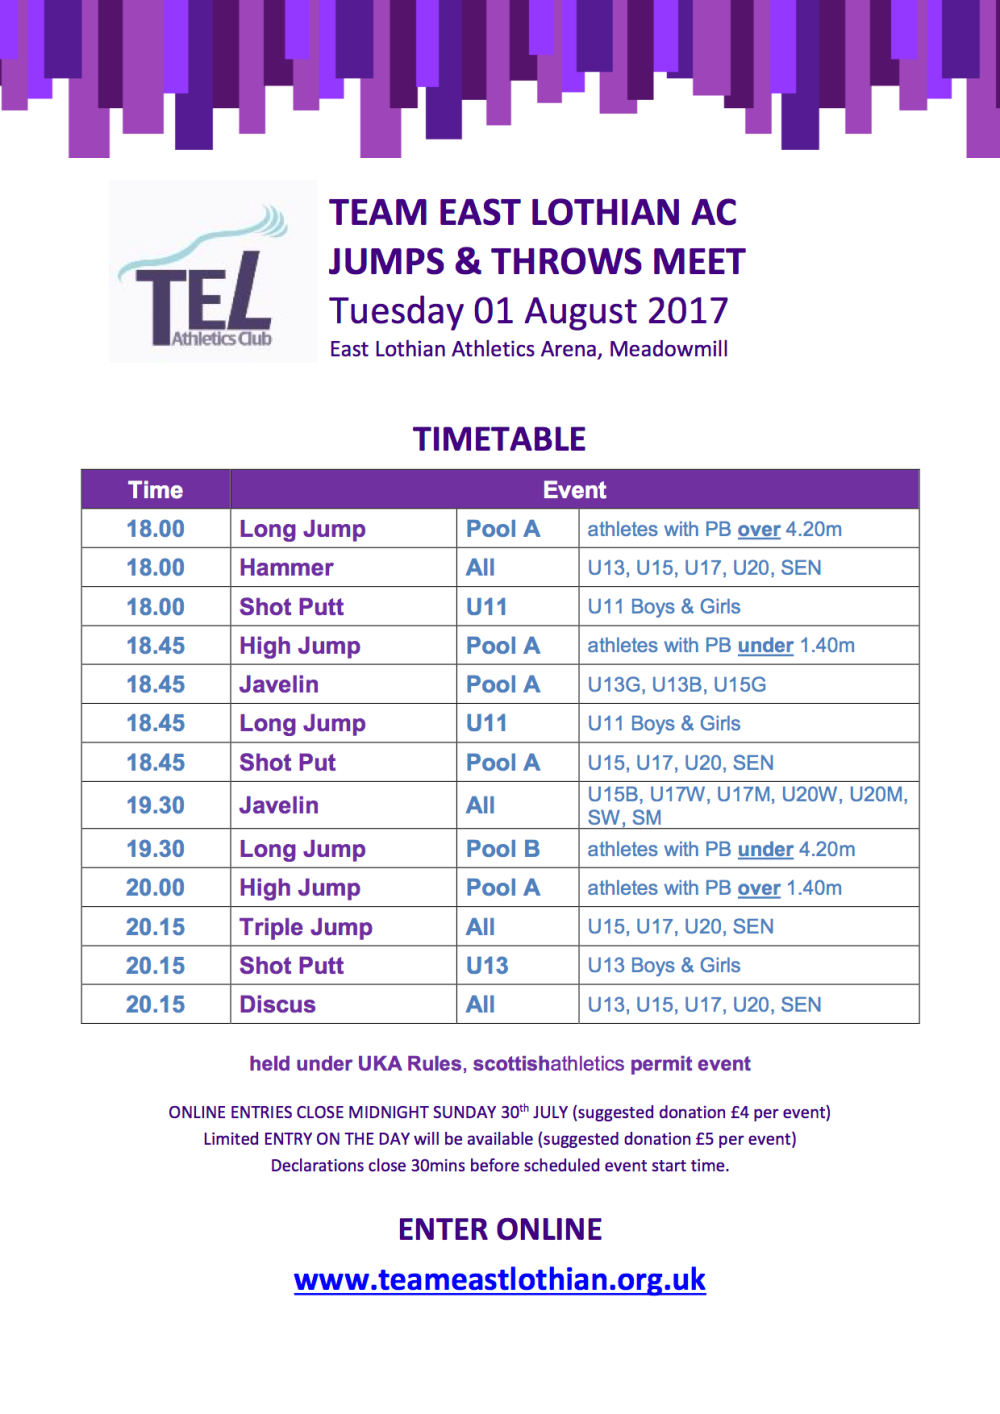 TEL Jumps & Throws